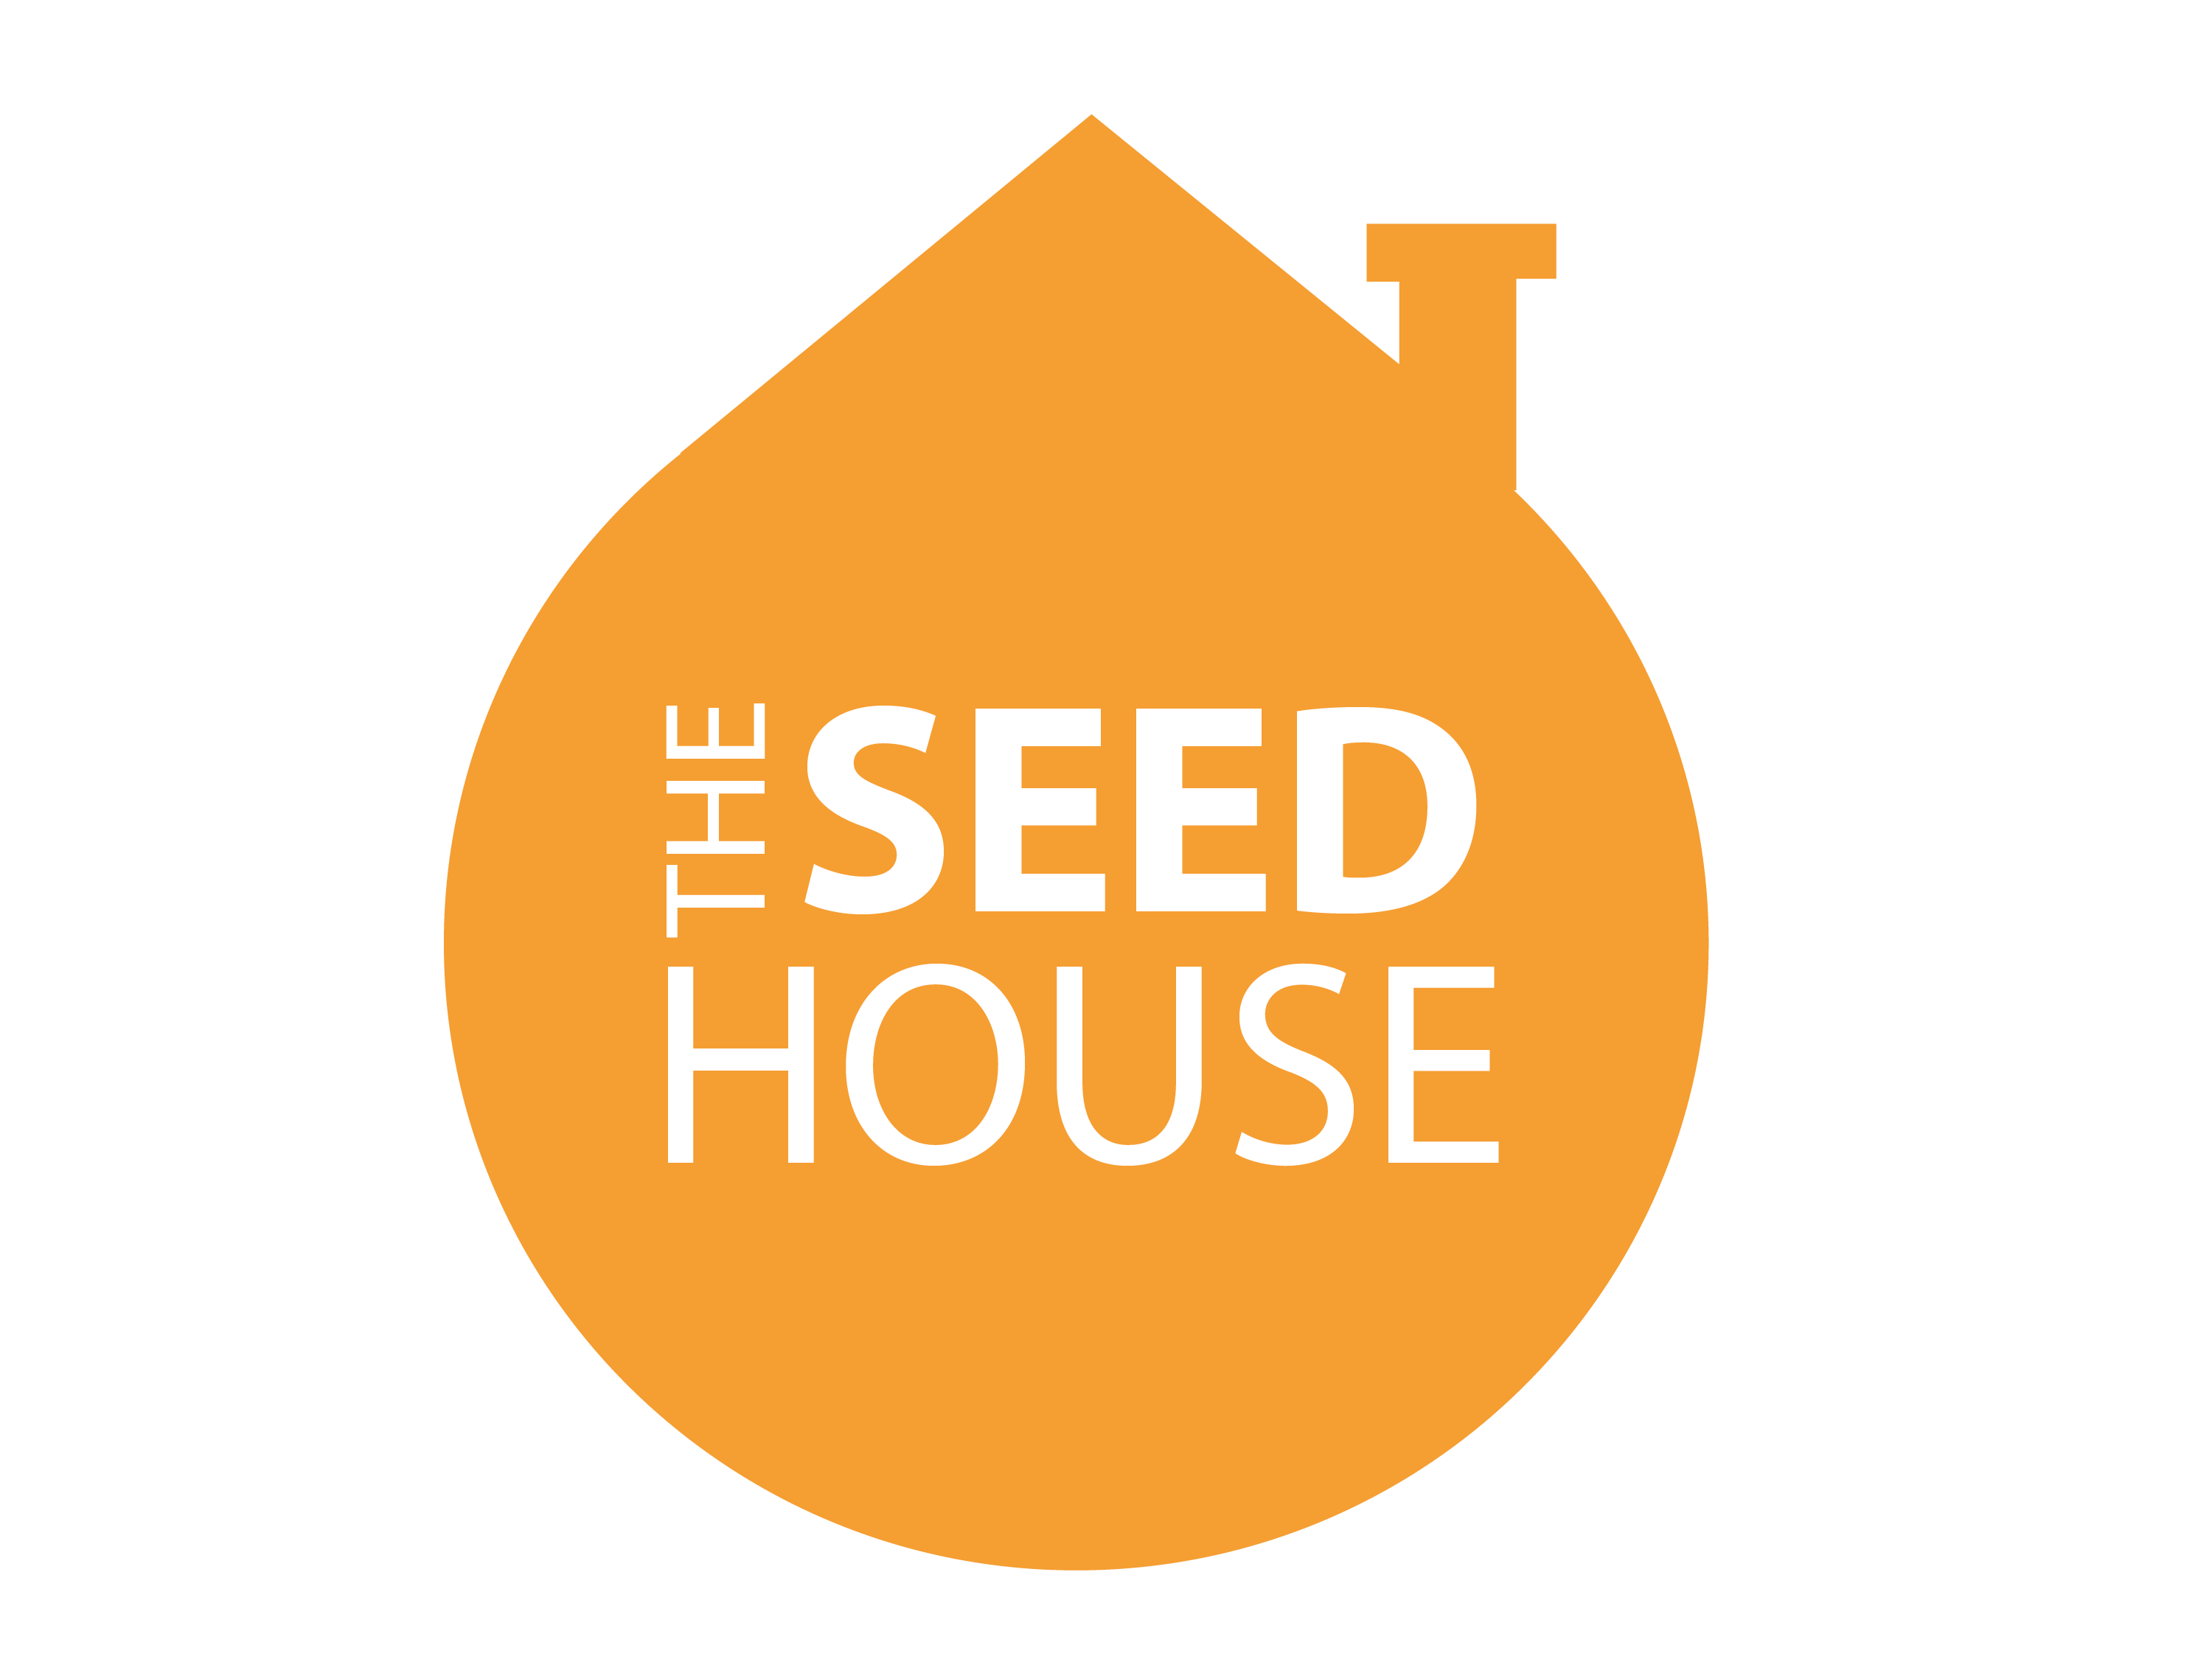 The Seed House